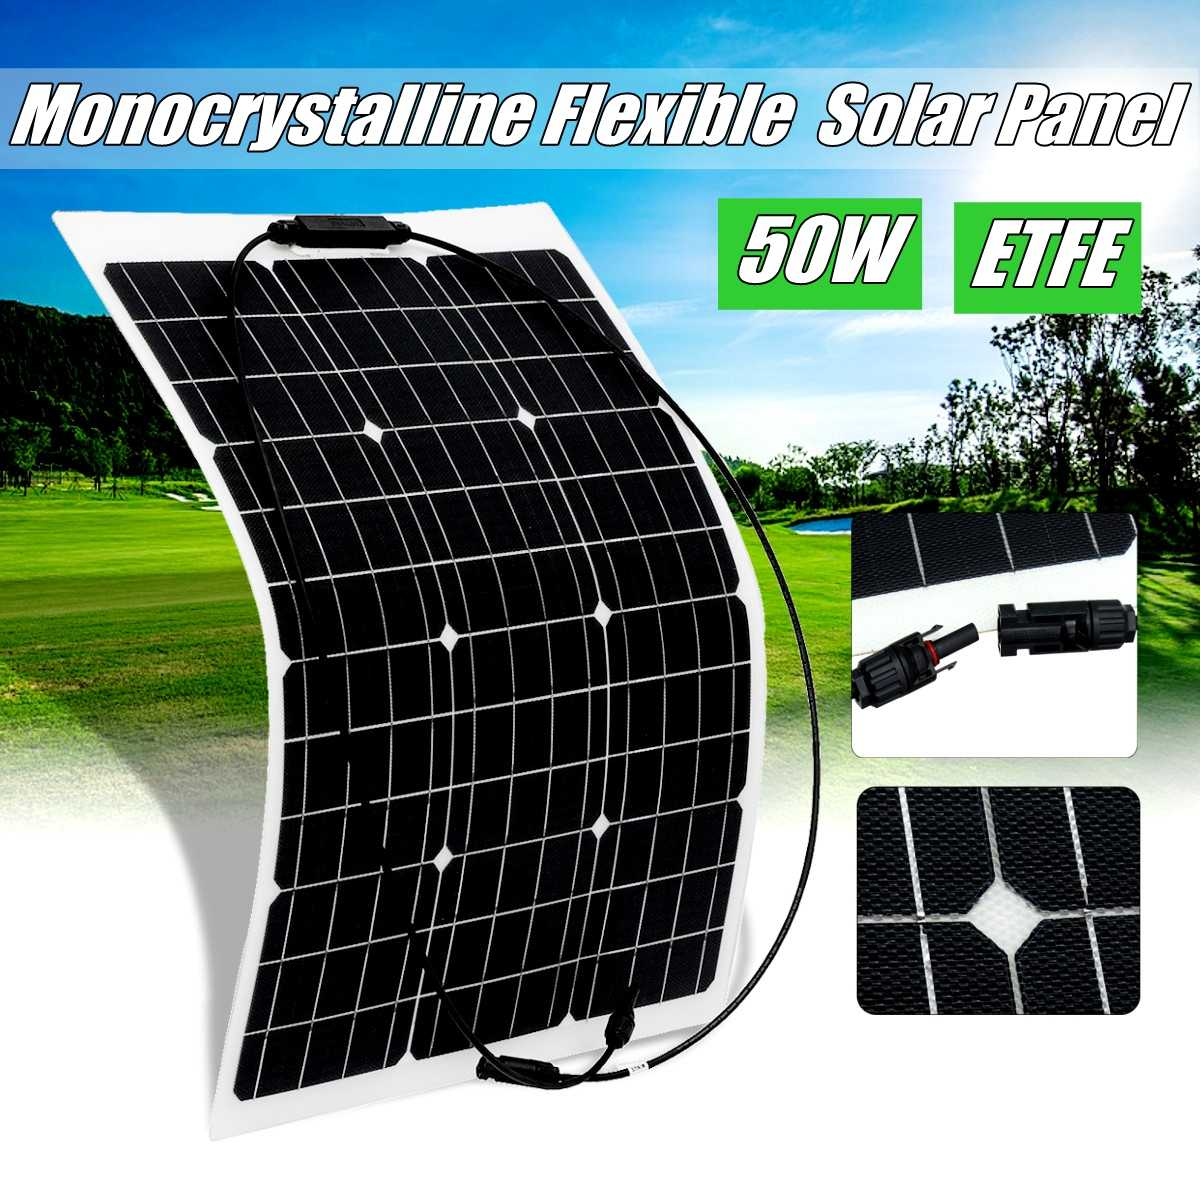 Semi-Flexible Solar Panel 18V 50W Solar Charger For 12V Car Battery ETFE Monocrystalline Cells For Hause,boat,roof Cable image